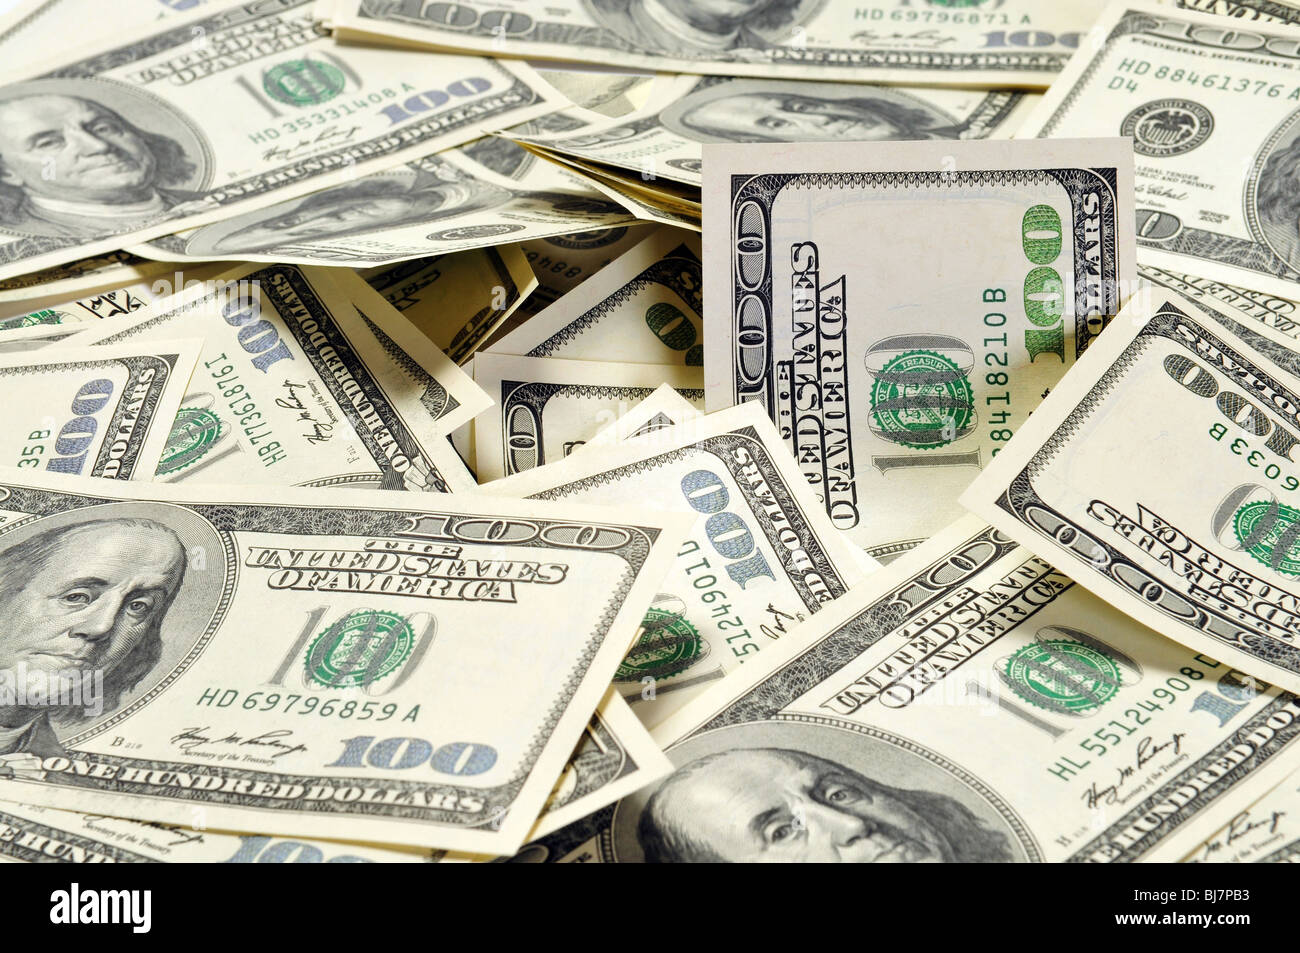 Pile of American dollars arranged as background - Stock Image